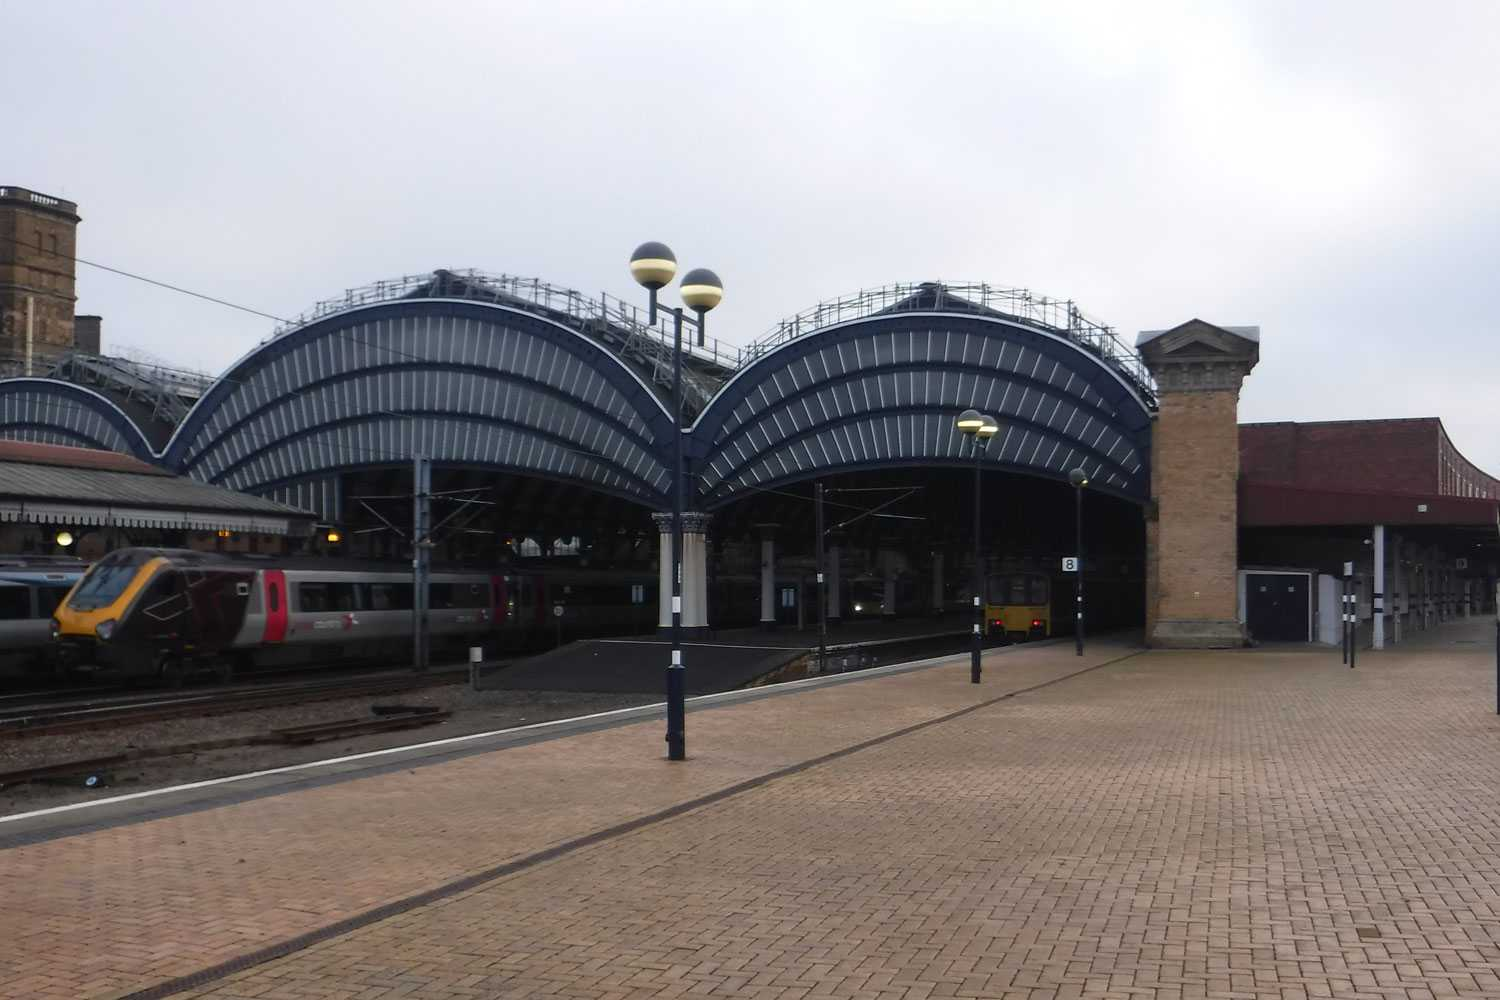 North Exit of York Railway Station from platform 8